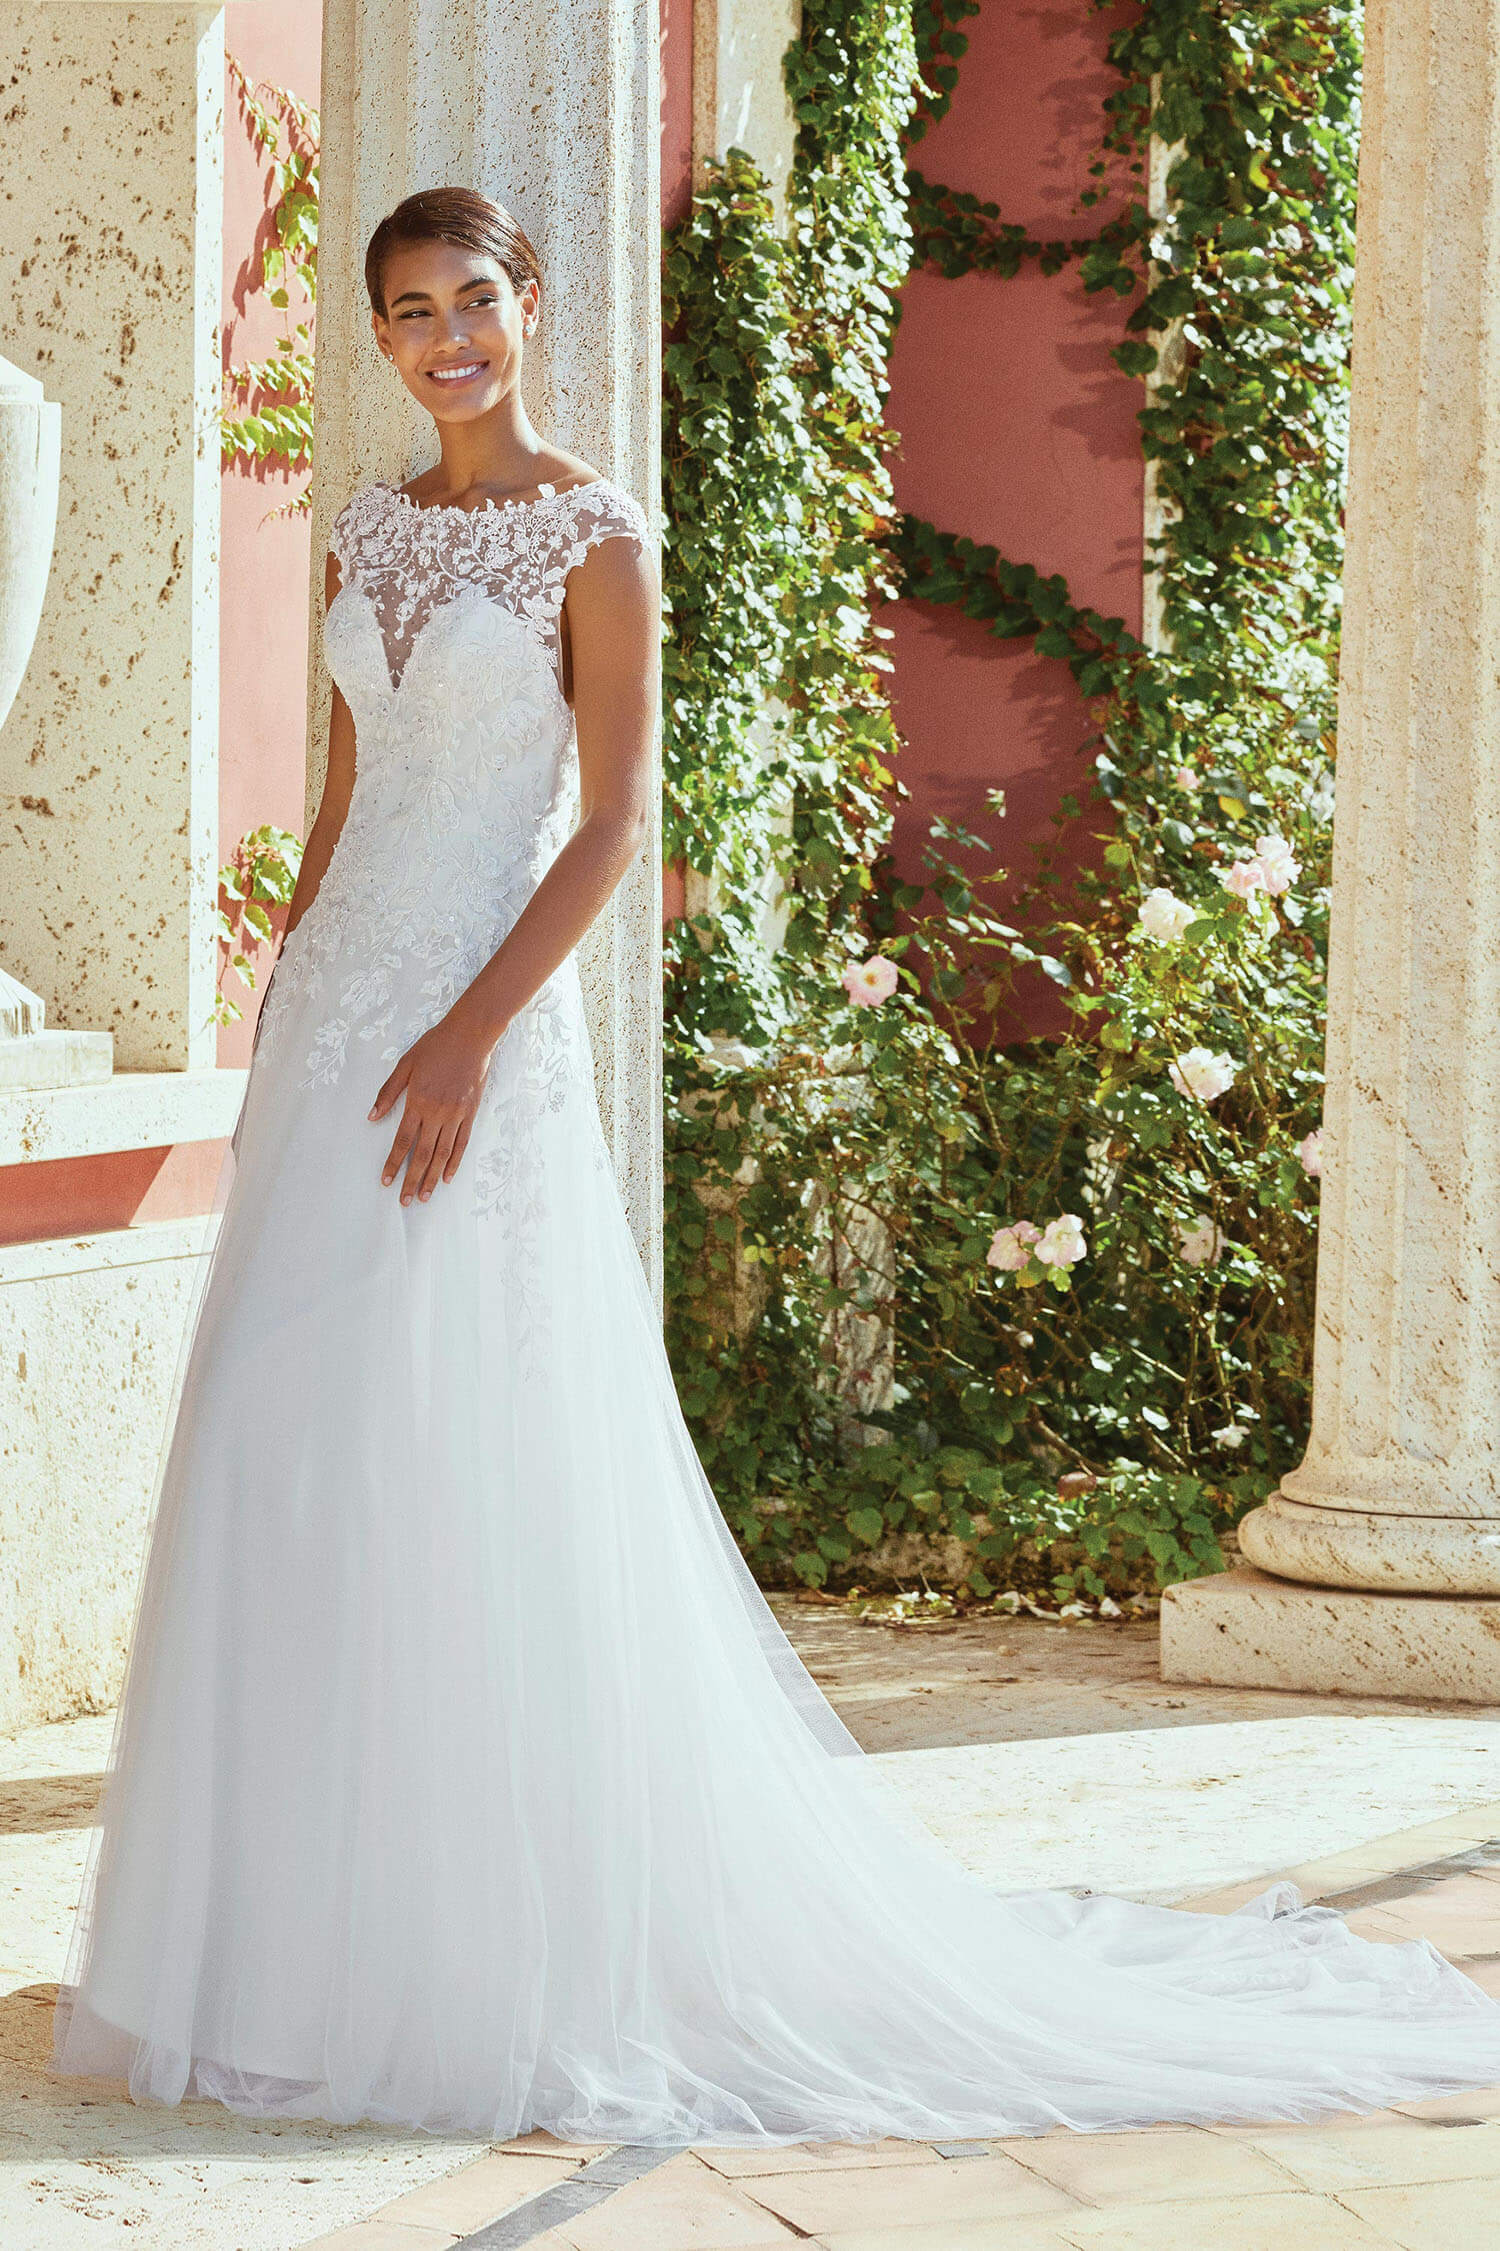 A bride wearing a fit and flare style gown with illusion neckline and soft drape tulle skirt. The gown is covered in sparkling beaded appliques.